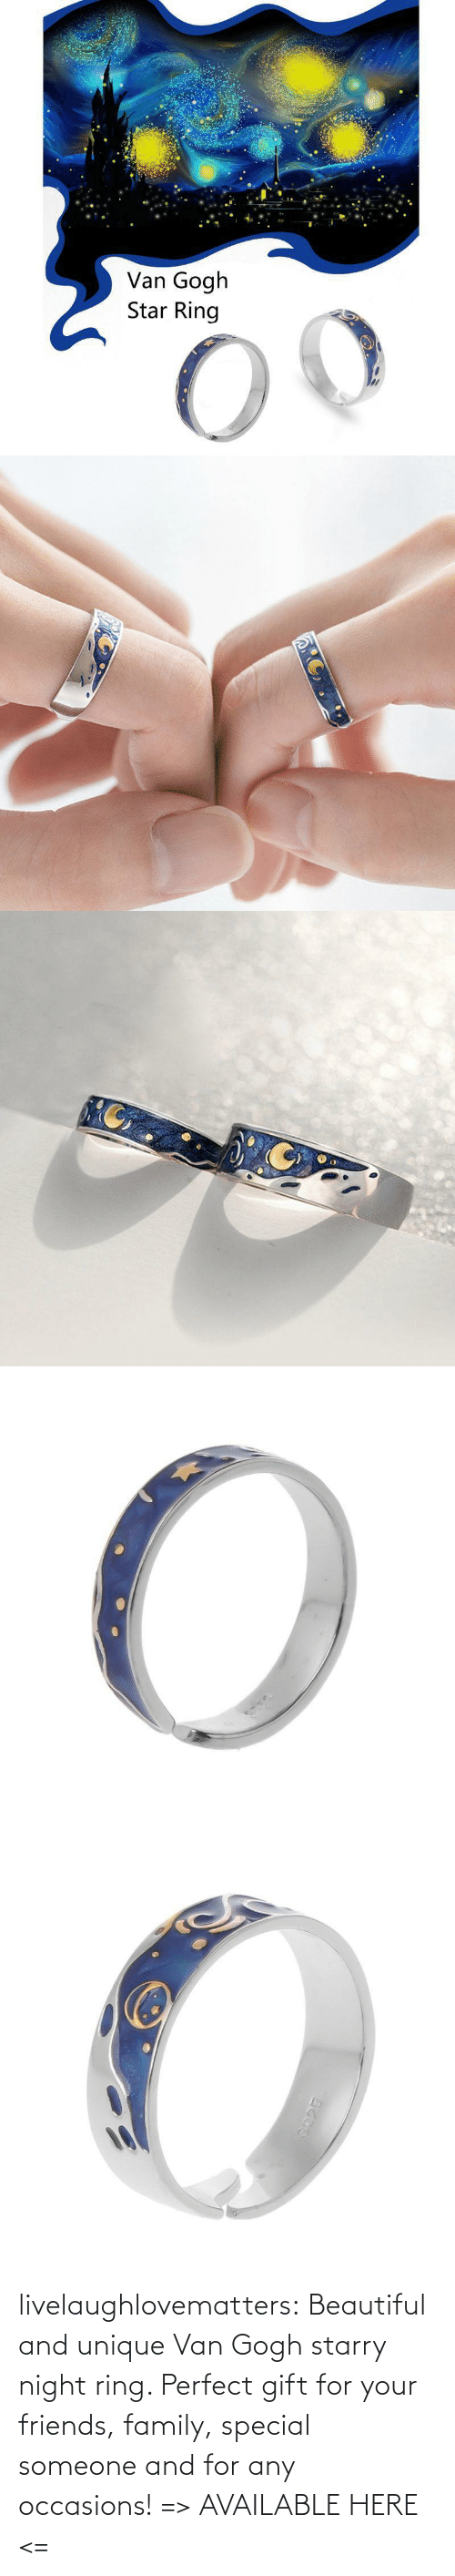 van gogh: livelaughlovematters: Beautiful and unique Van Gogh starry night ring. Perfect gift for your friends, family, special someone and for any occasions! => AVAILABLE HERE <=